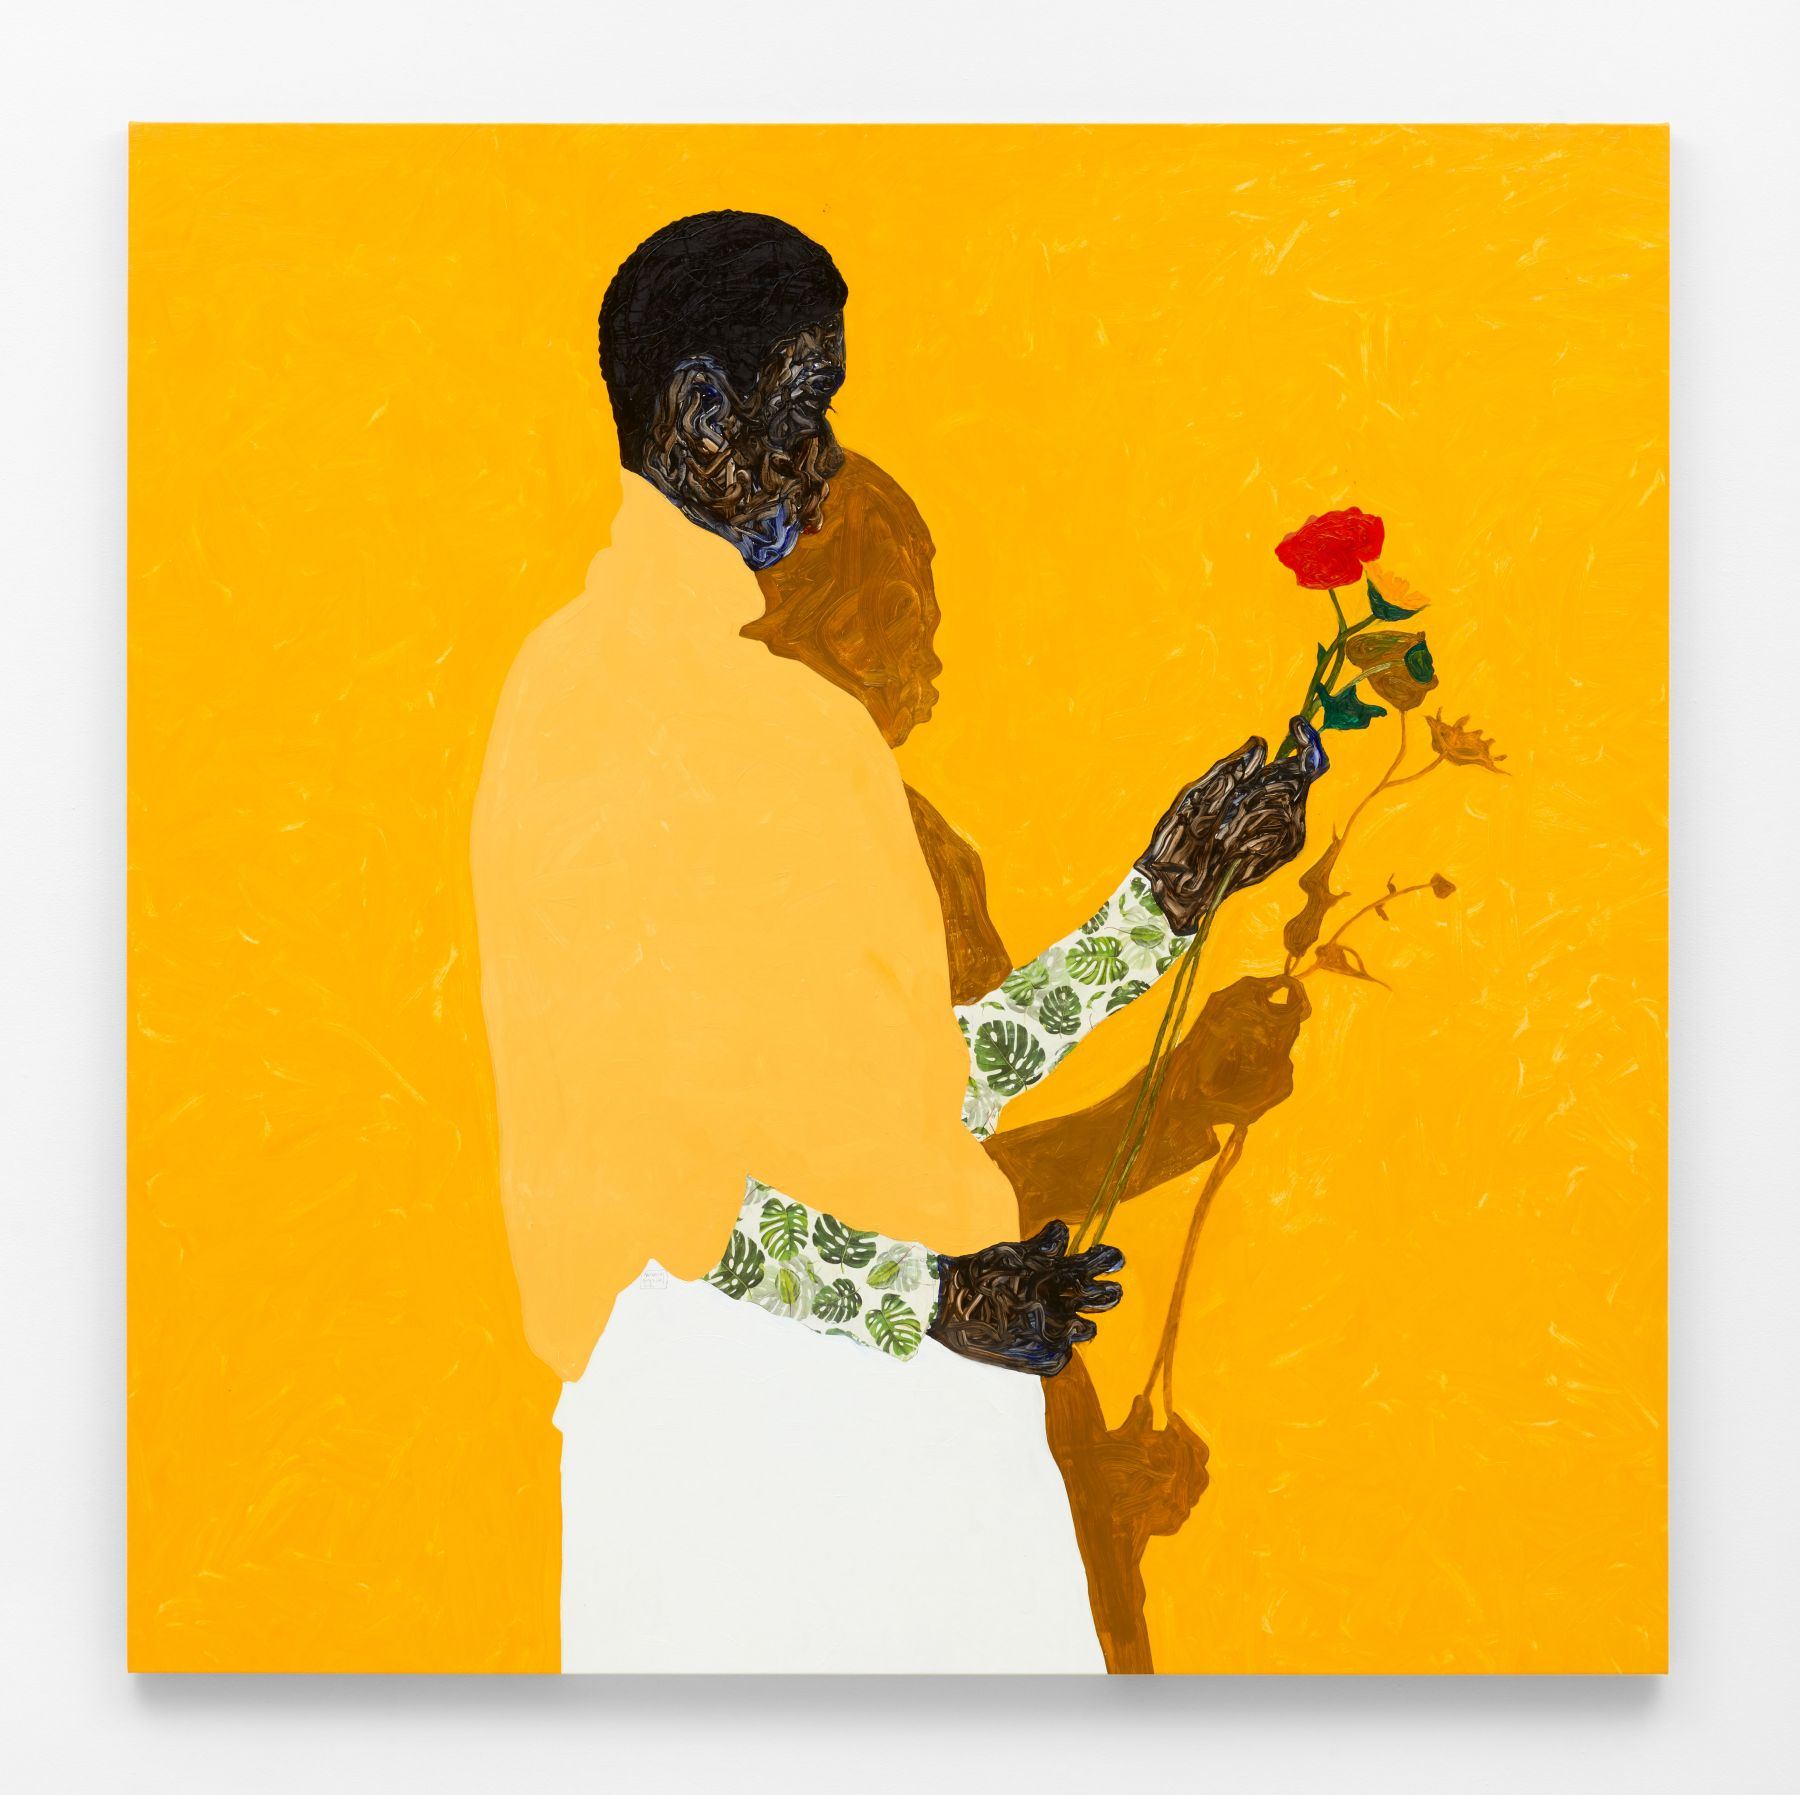 A figure in profile holds a dying flower, their form cut into the bright orange of the canvas by the outline of their shadow, creeping out from behind them, and their skin a tangle of smooth, multi-colored brushstrokes.